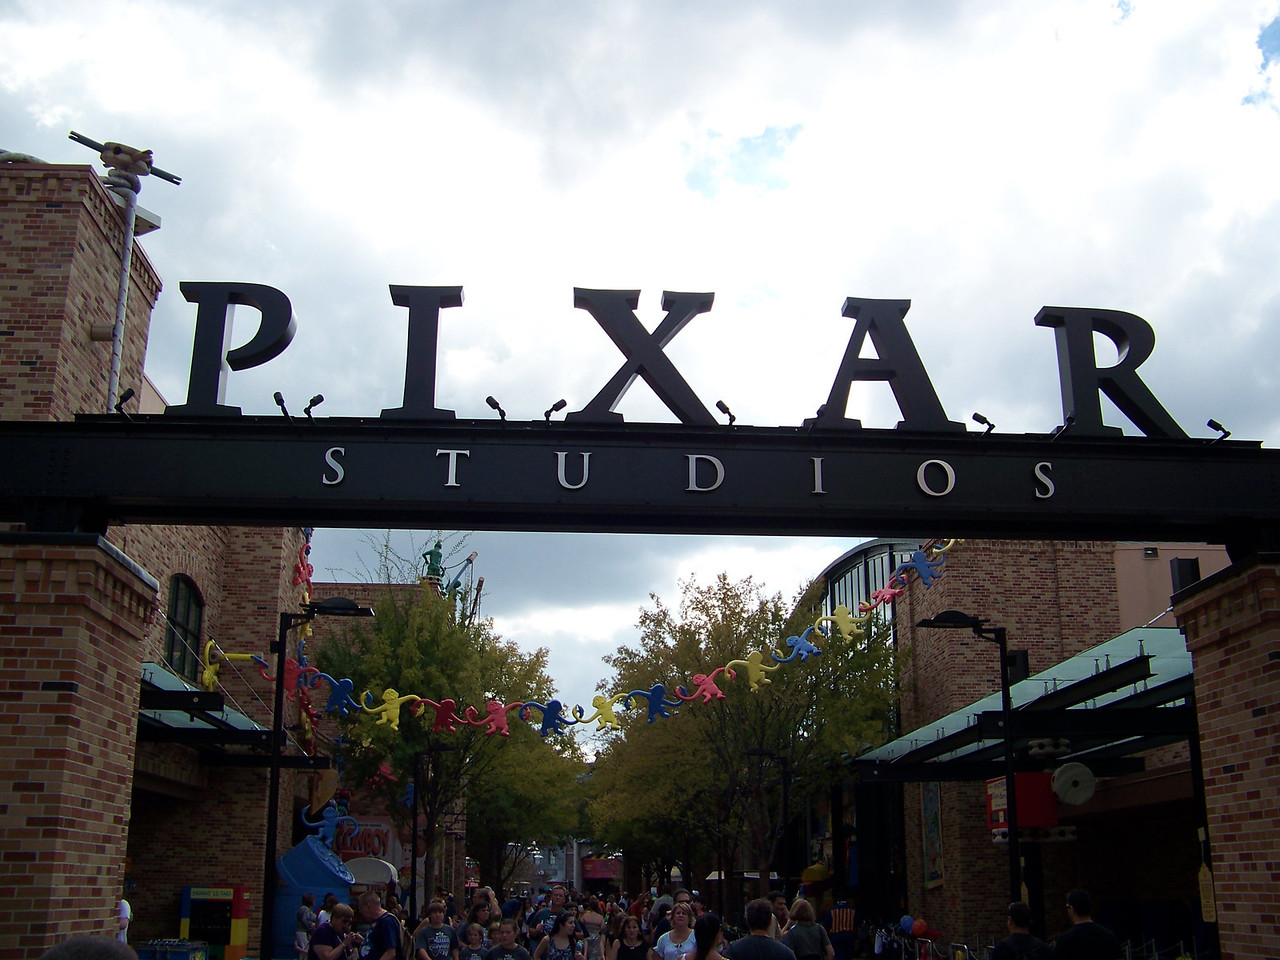 One section of the park has become Pixar Studios.  The brick facades here resemble the buildings of the real Pixar campus in Emeryville, CA.<br /> [Disney's Hollywood Studios]